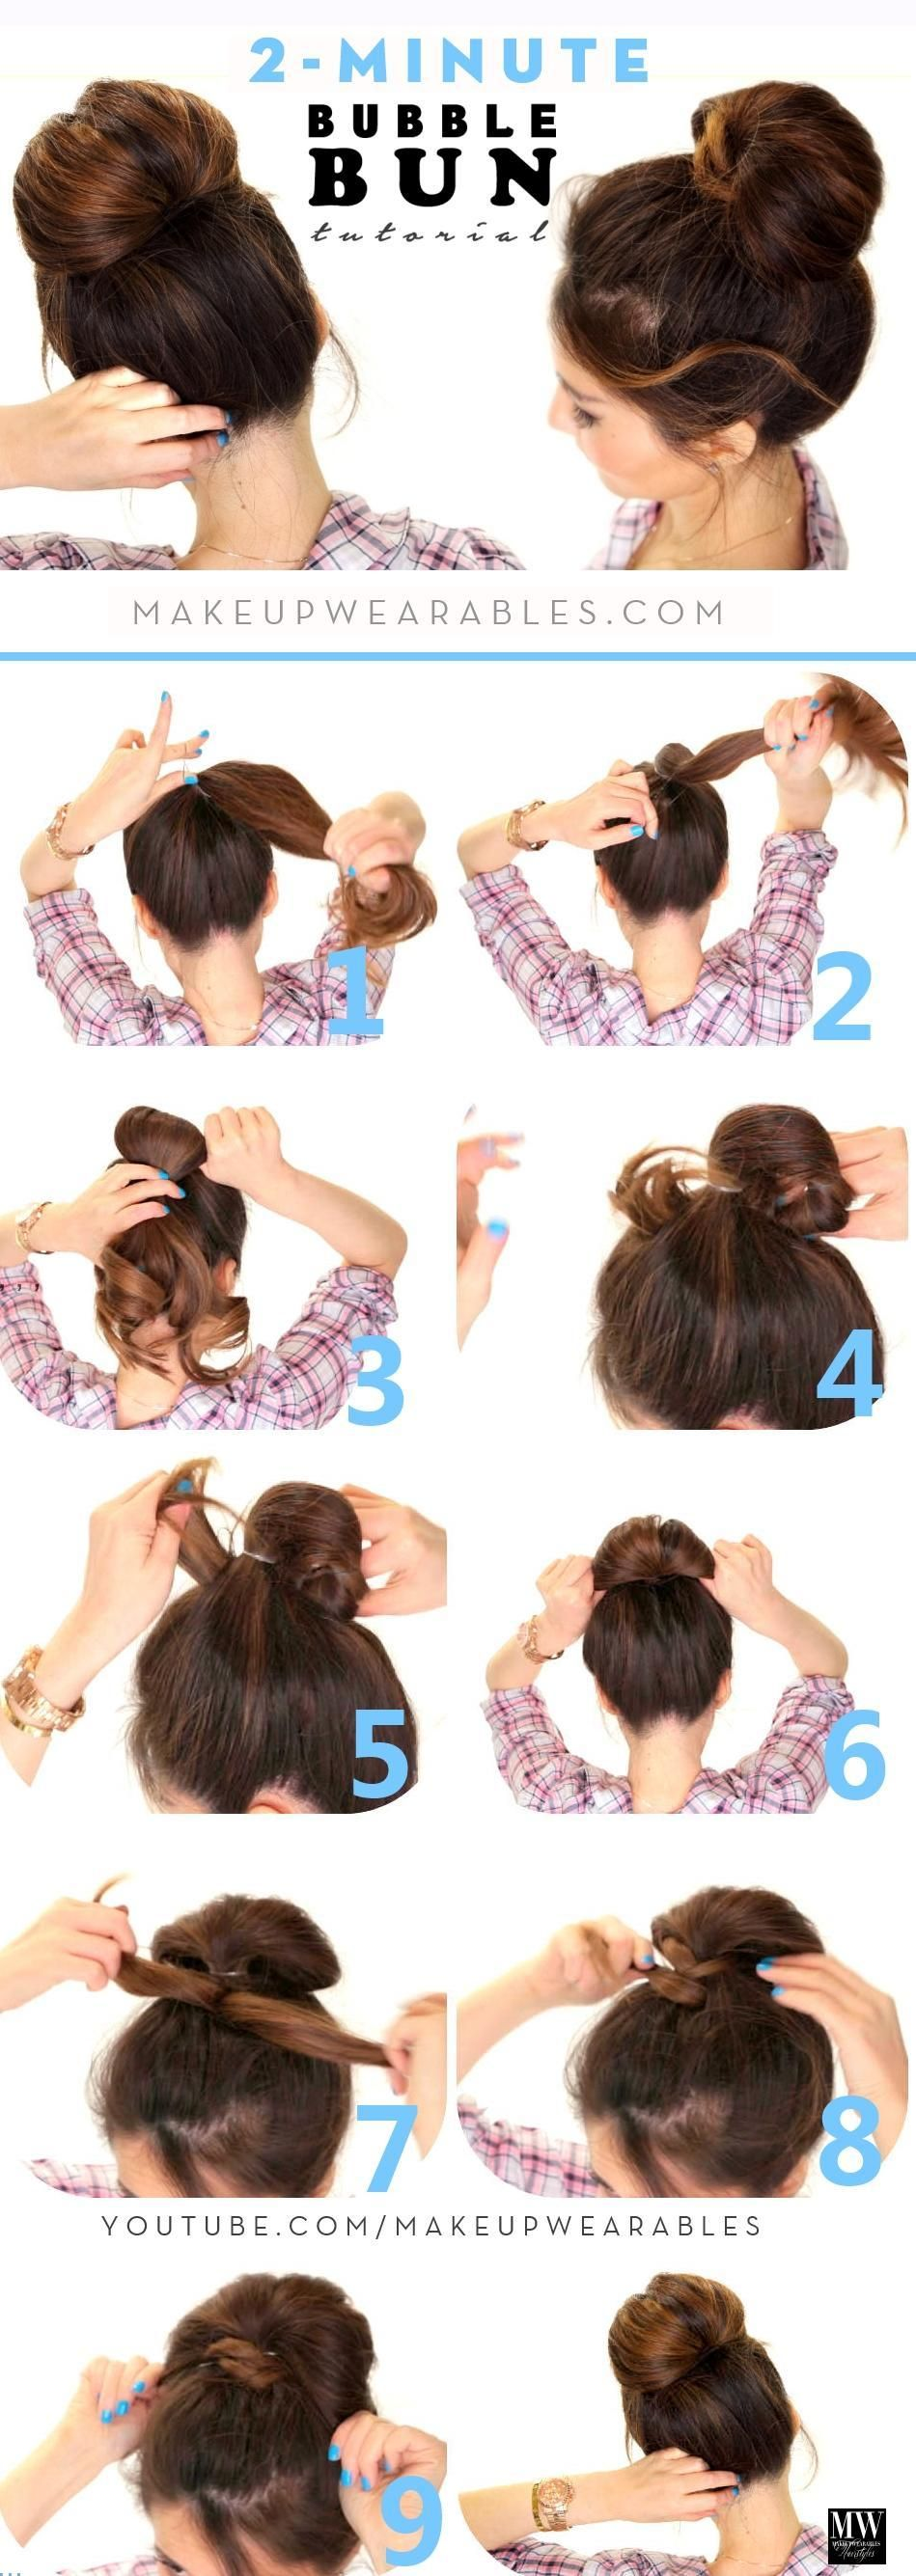 2 Minute Hairstyles 2 Minute Bubble Bun  #hairstyles #hairstyle #hair Hair Styles